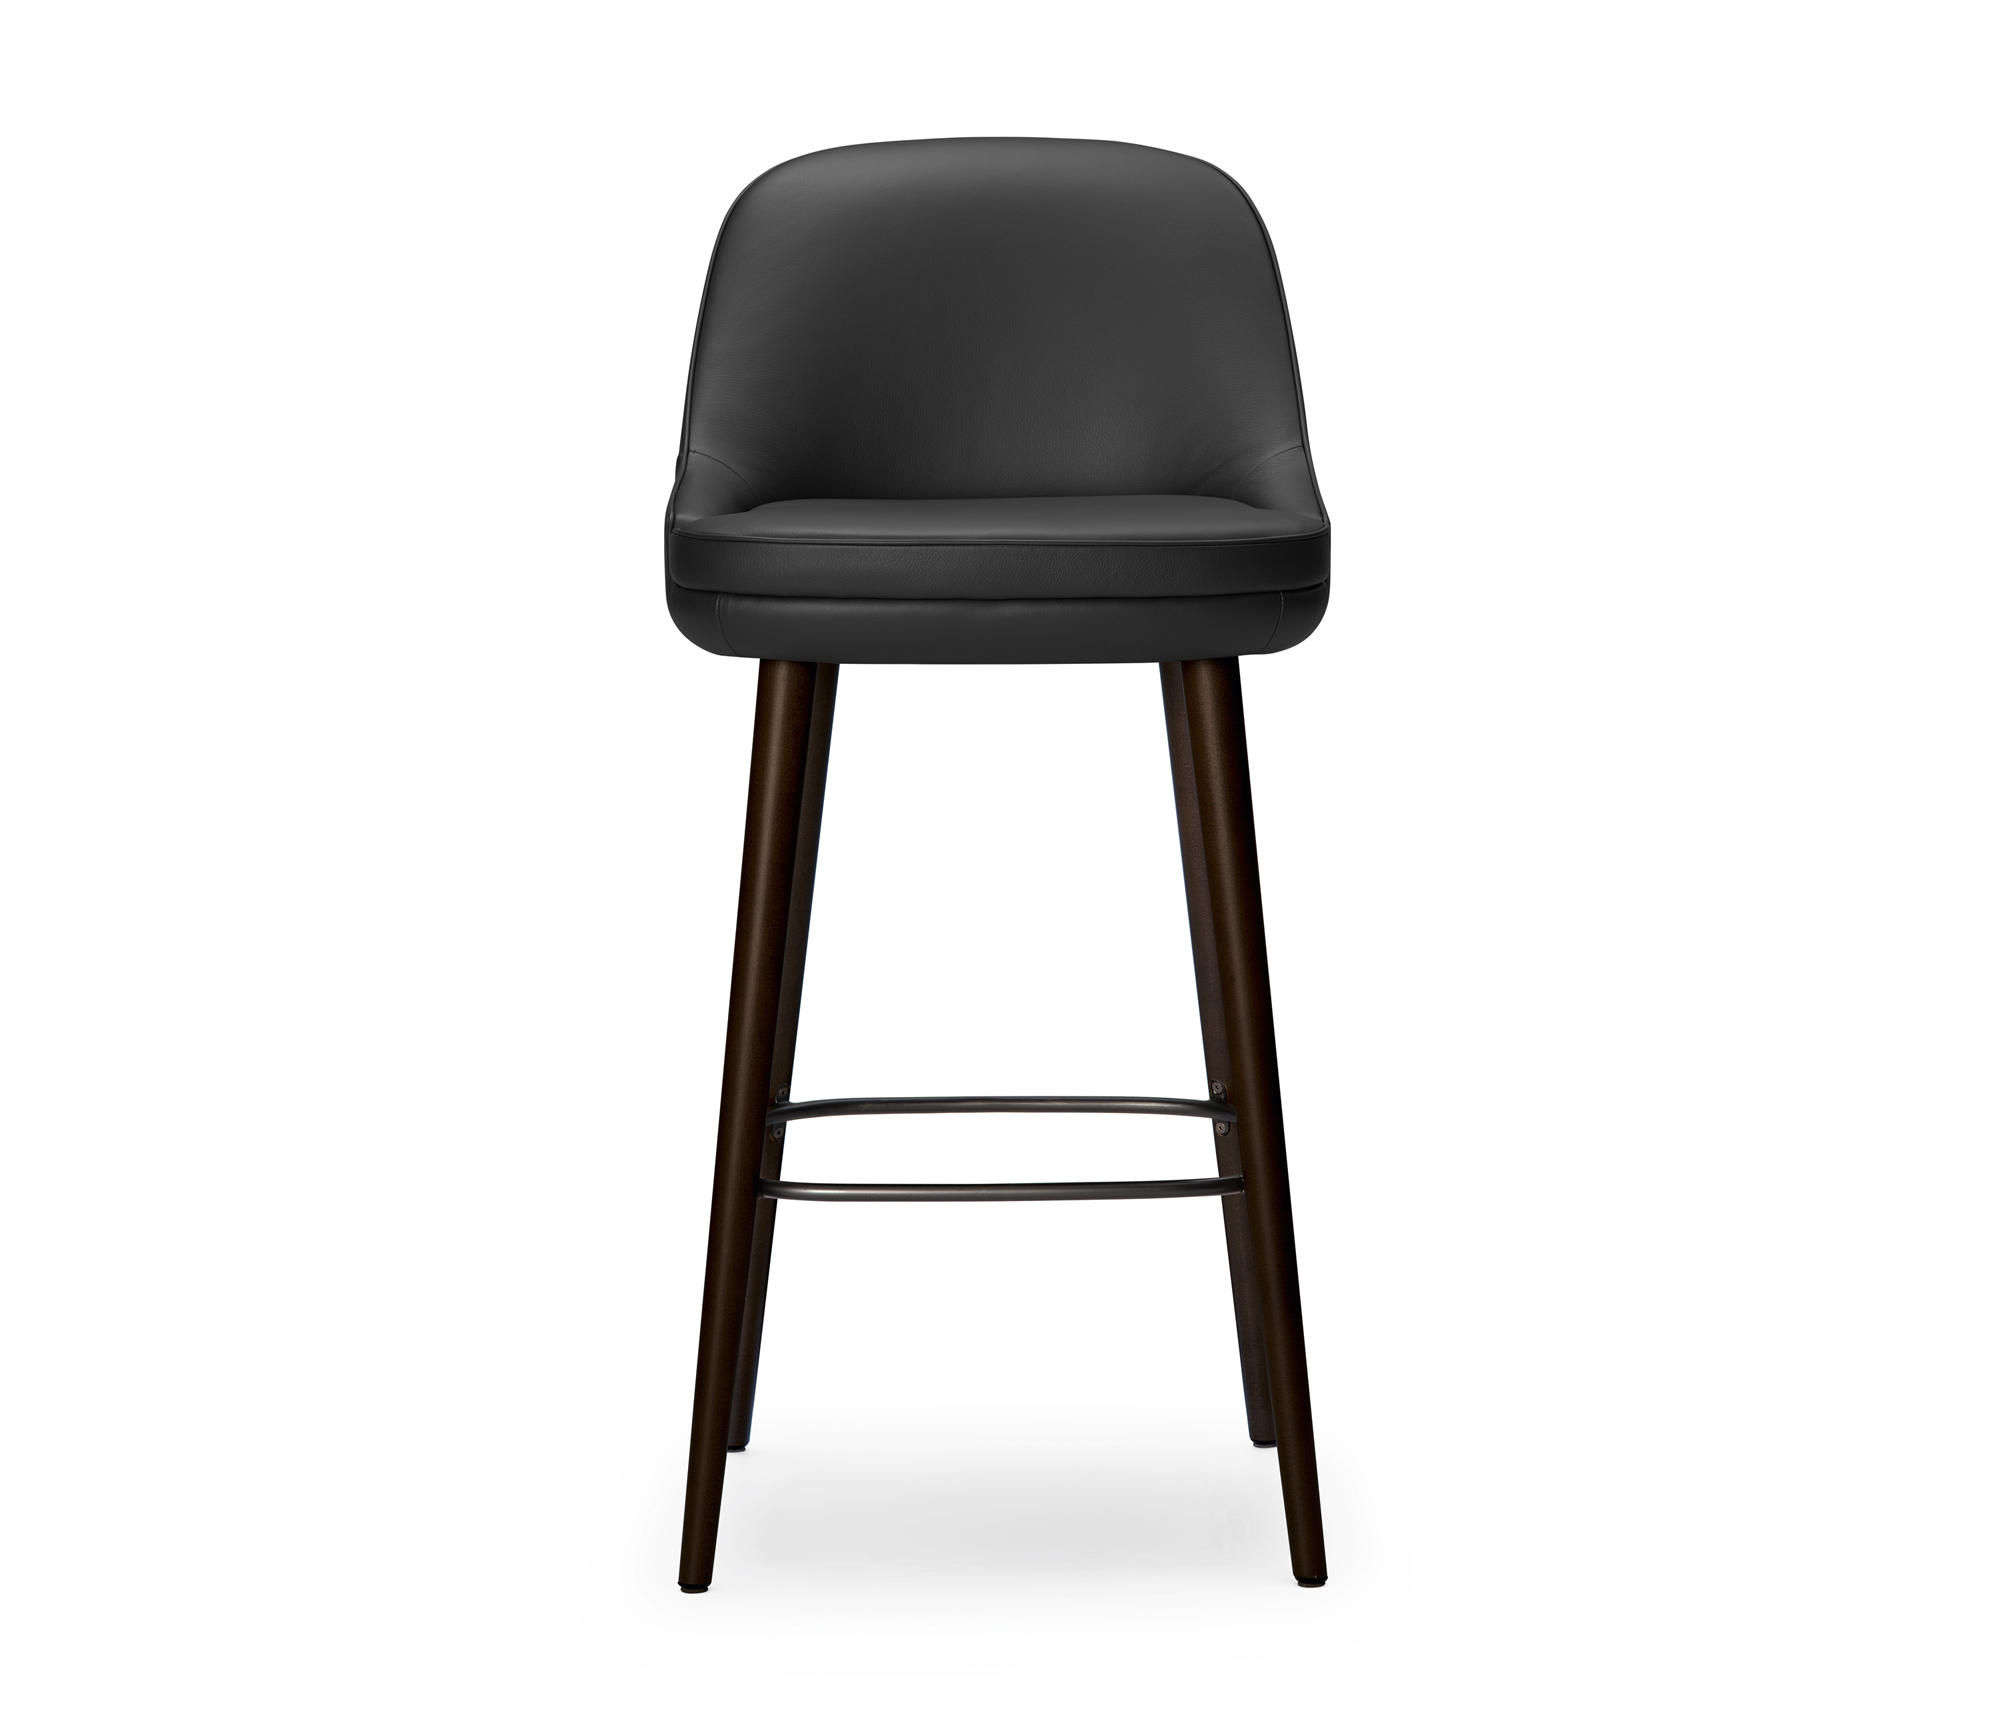 375 Bar Stools From Walter Knoll Architonic